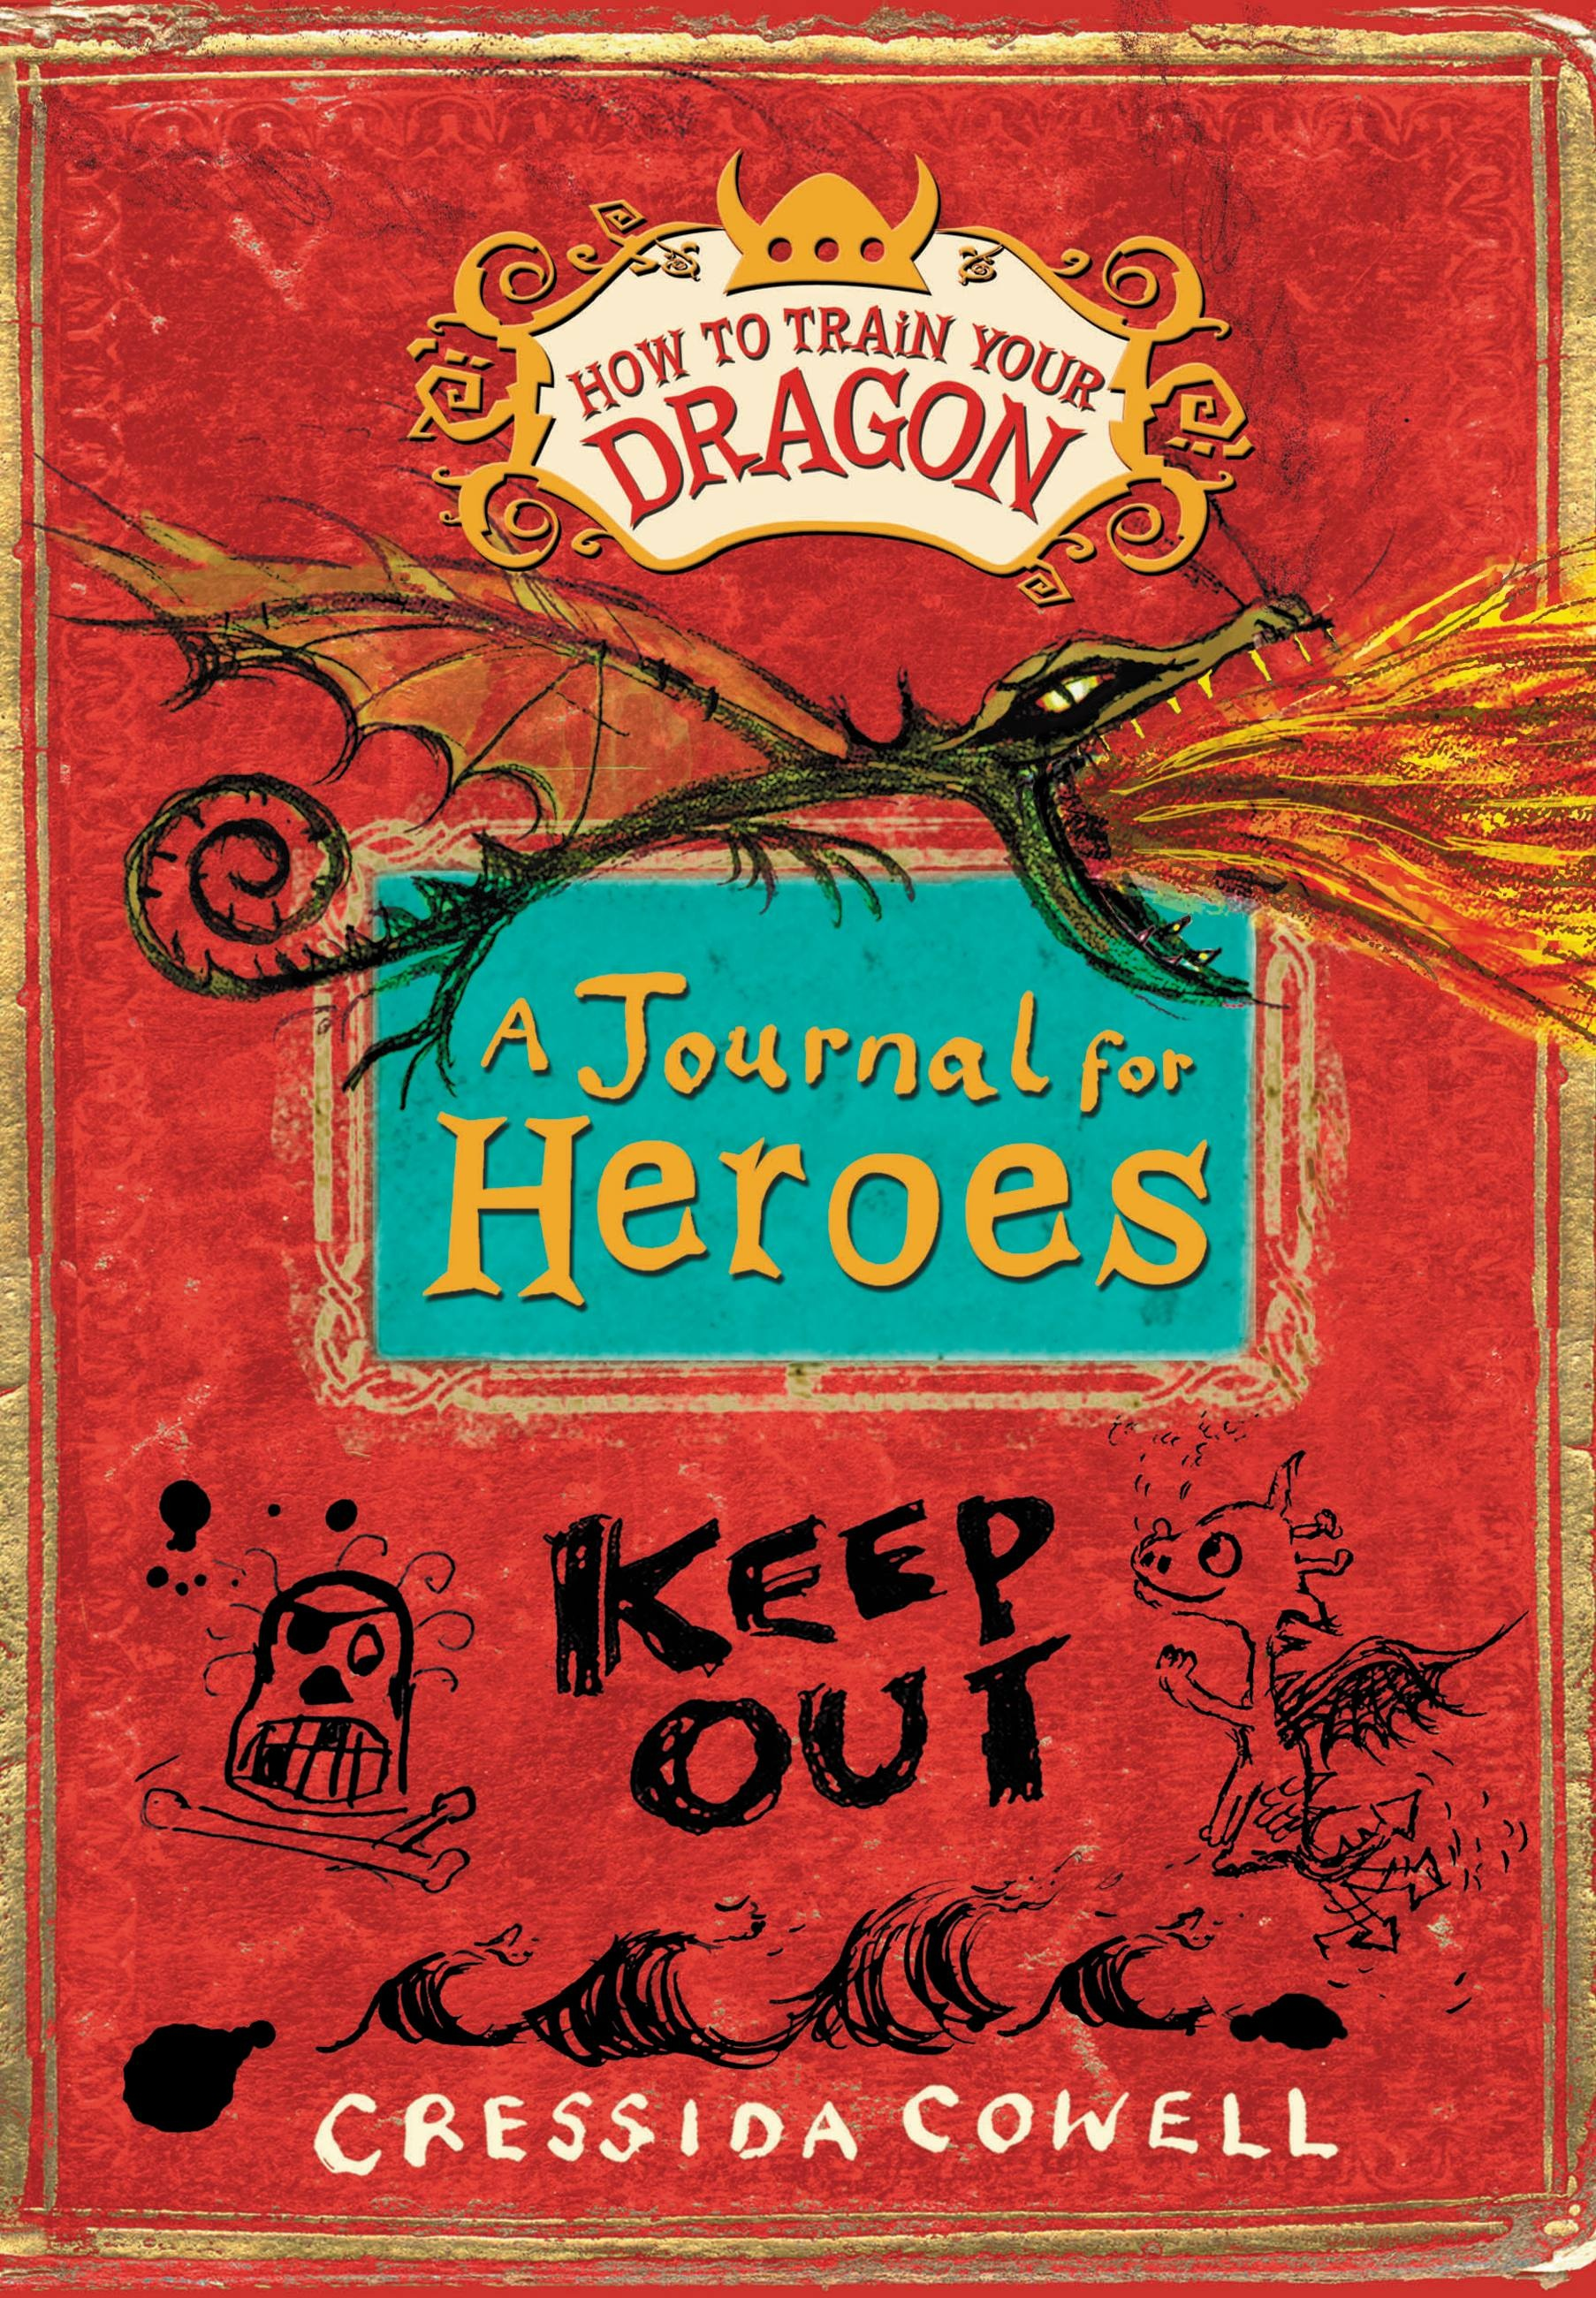 How to train your dragon a journal for heroes hachette book group ccuart Image collections